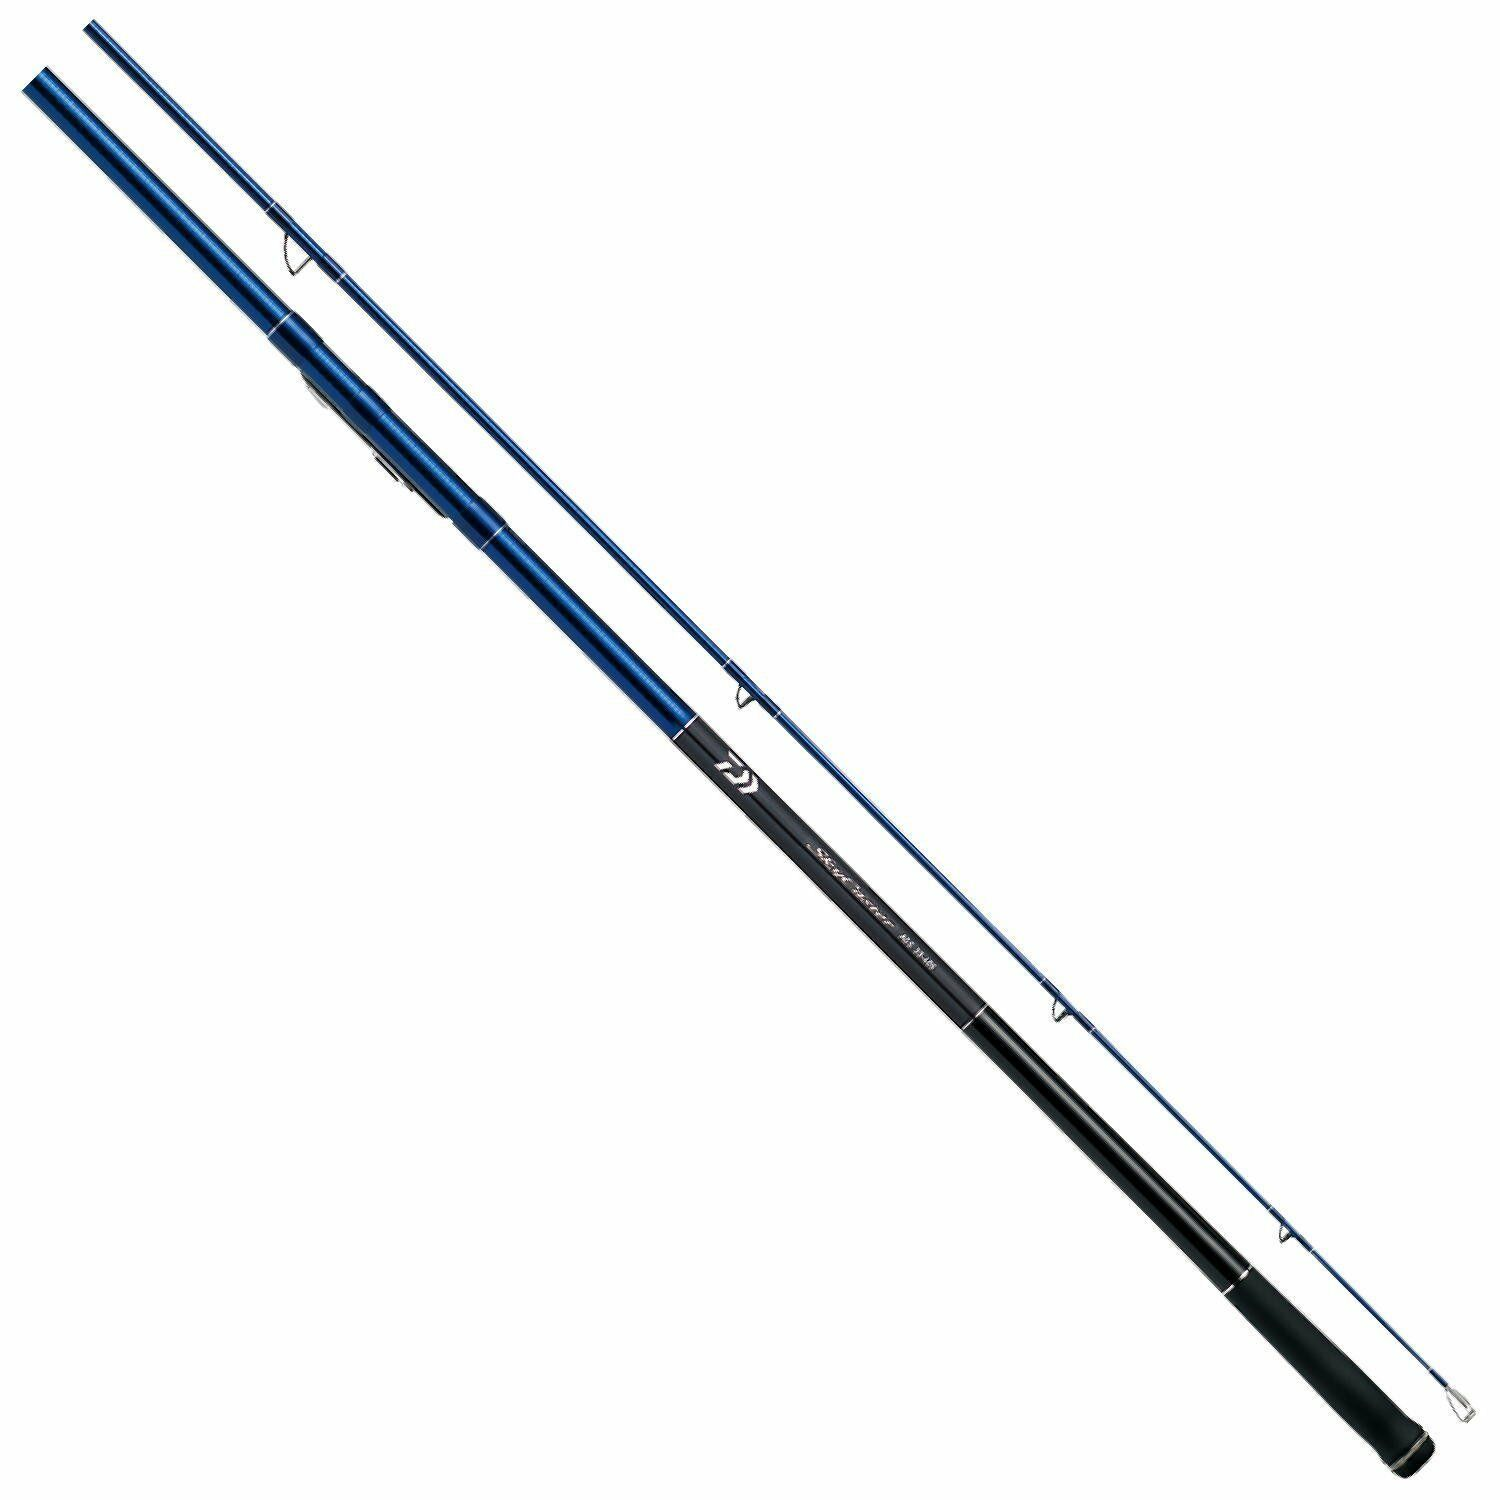 Daiwa SKY CASTER  27-405 S V fishing spinning rod pole JAPAN F S New 49606521155